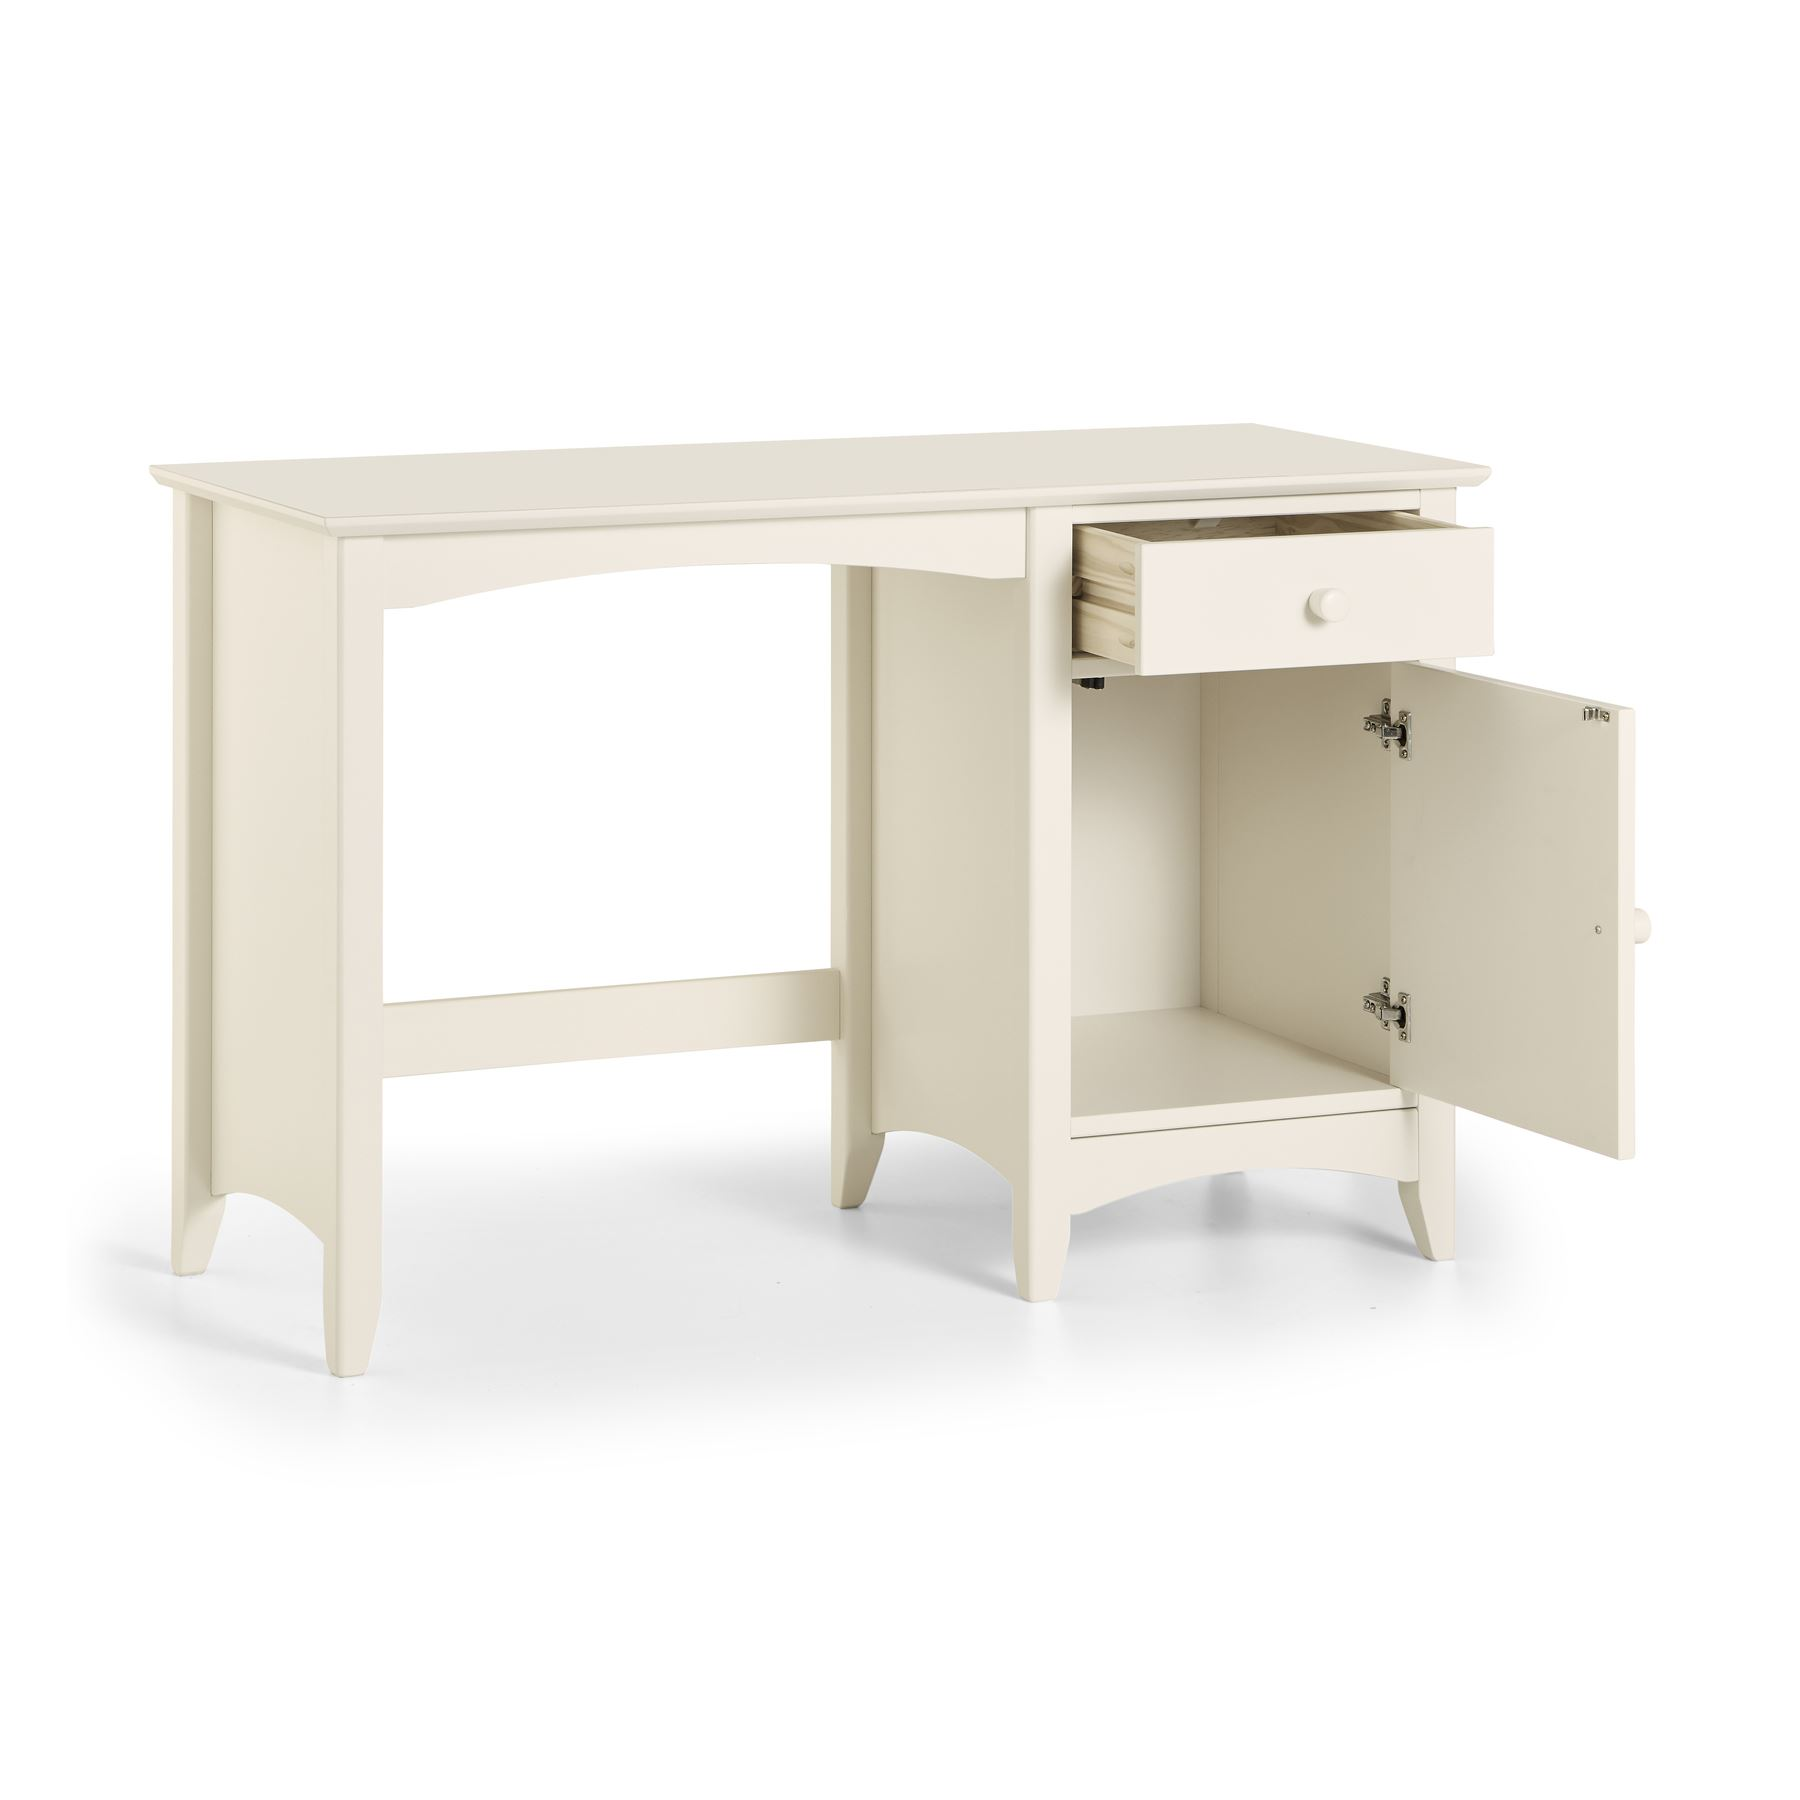 Julian Bowen Cameo Stone White Wood Student Study Desk 1 Drawer & Cupboard